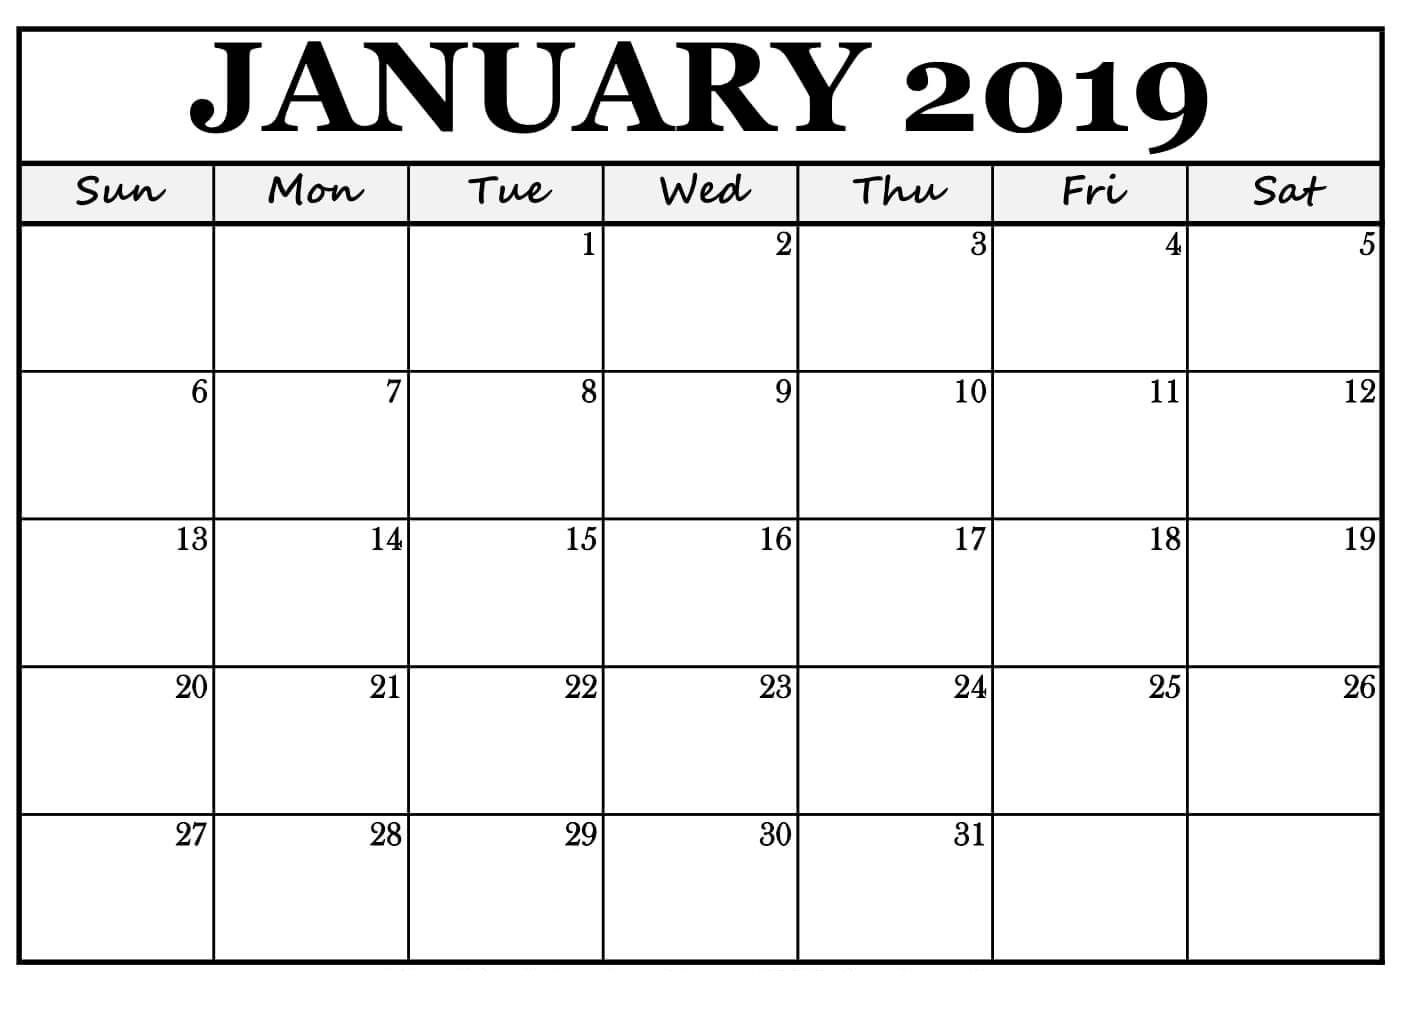 January 2019 Printable Calendar Word | Free Printable January 2019 Free Calendar Landscape Monthly